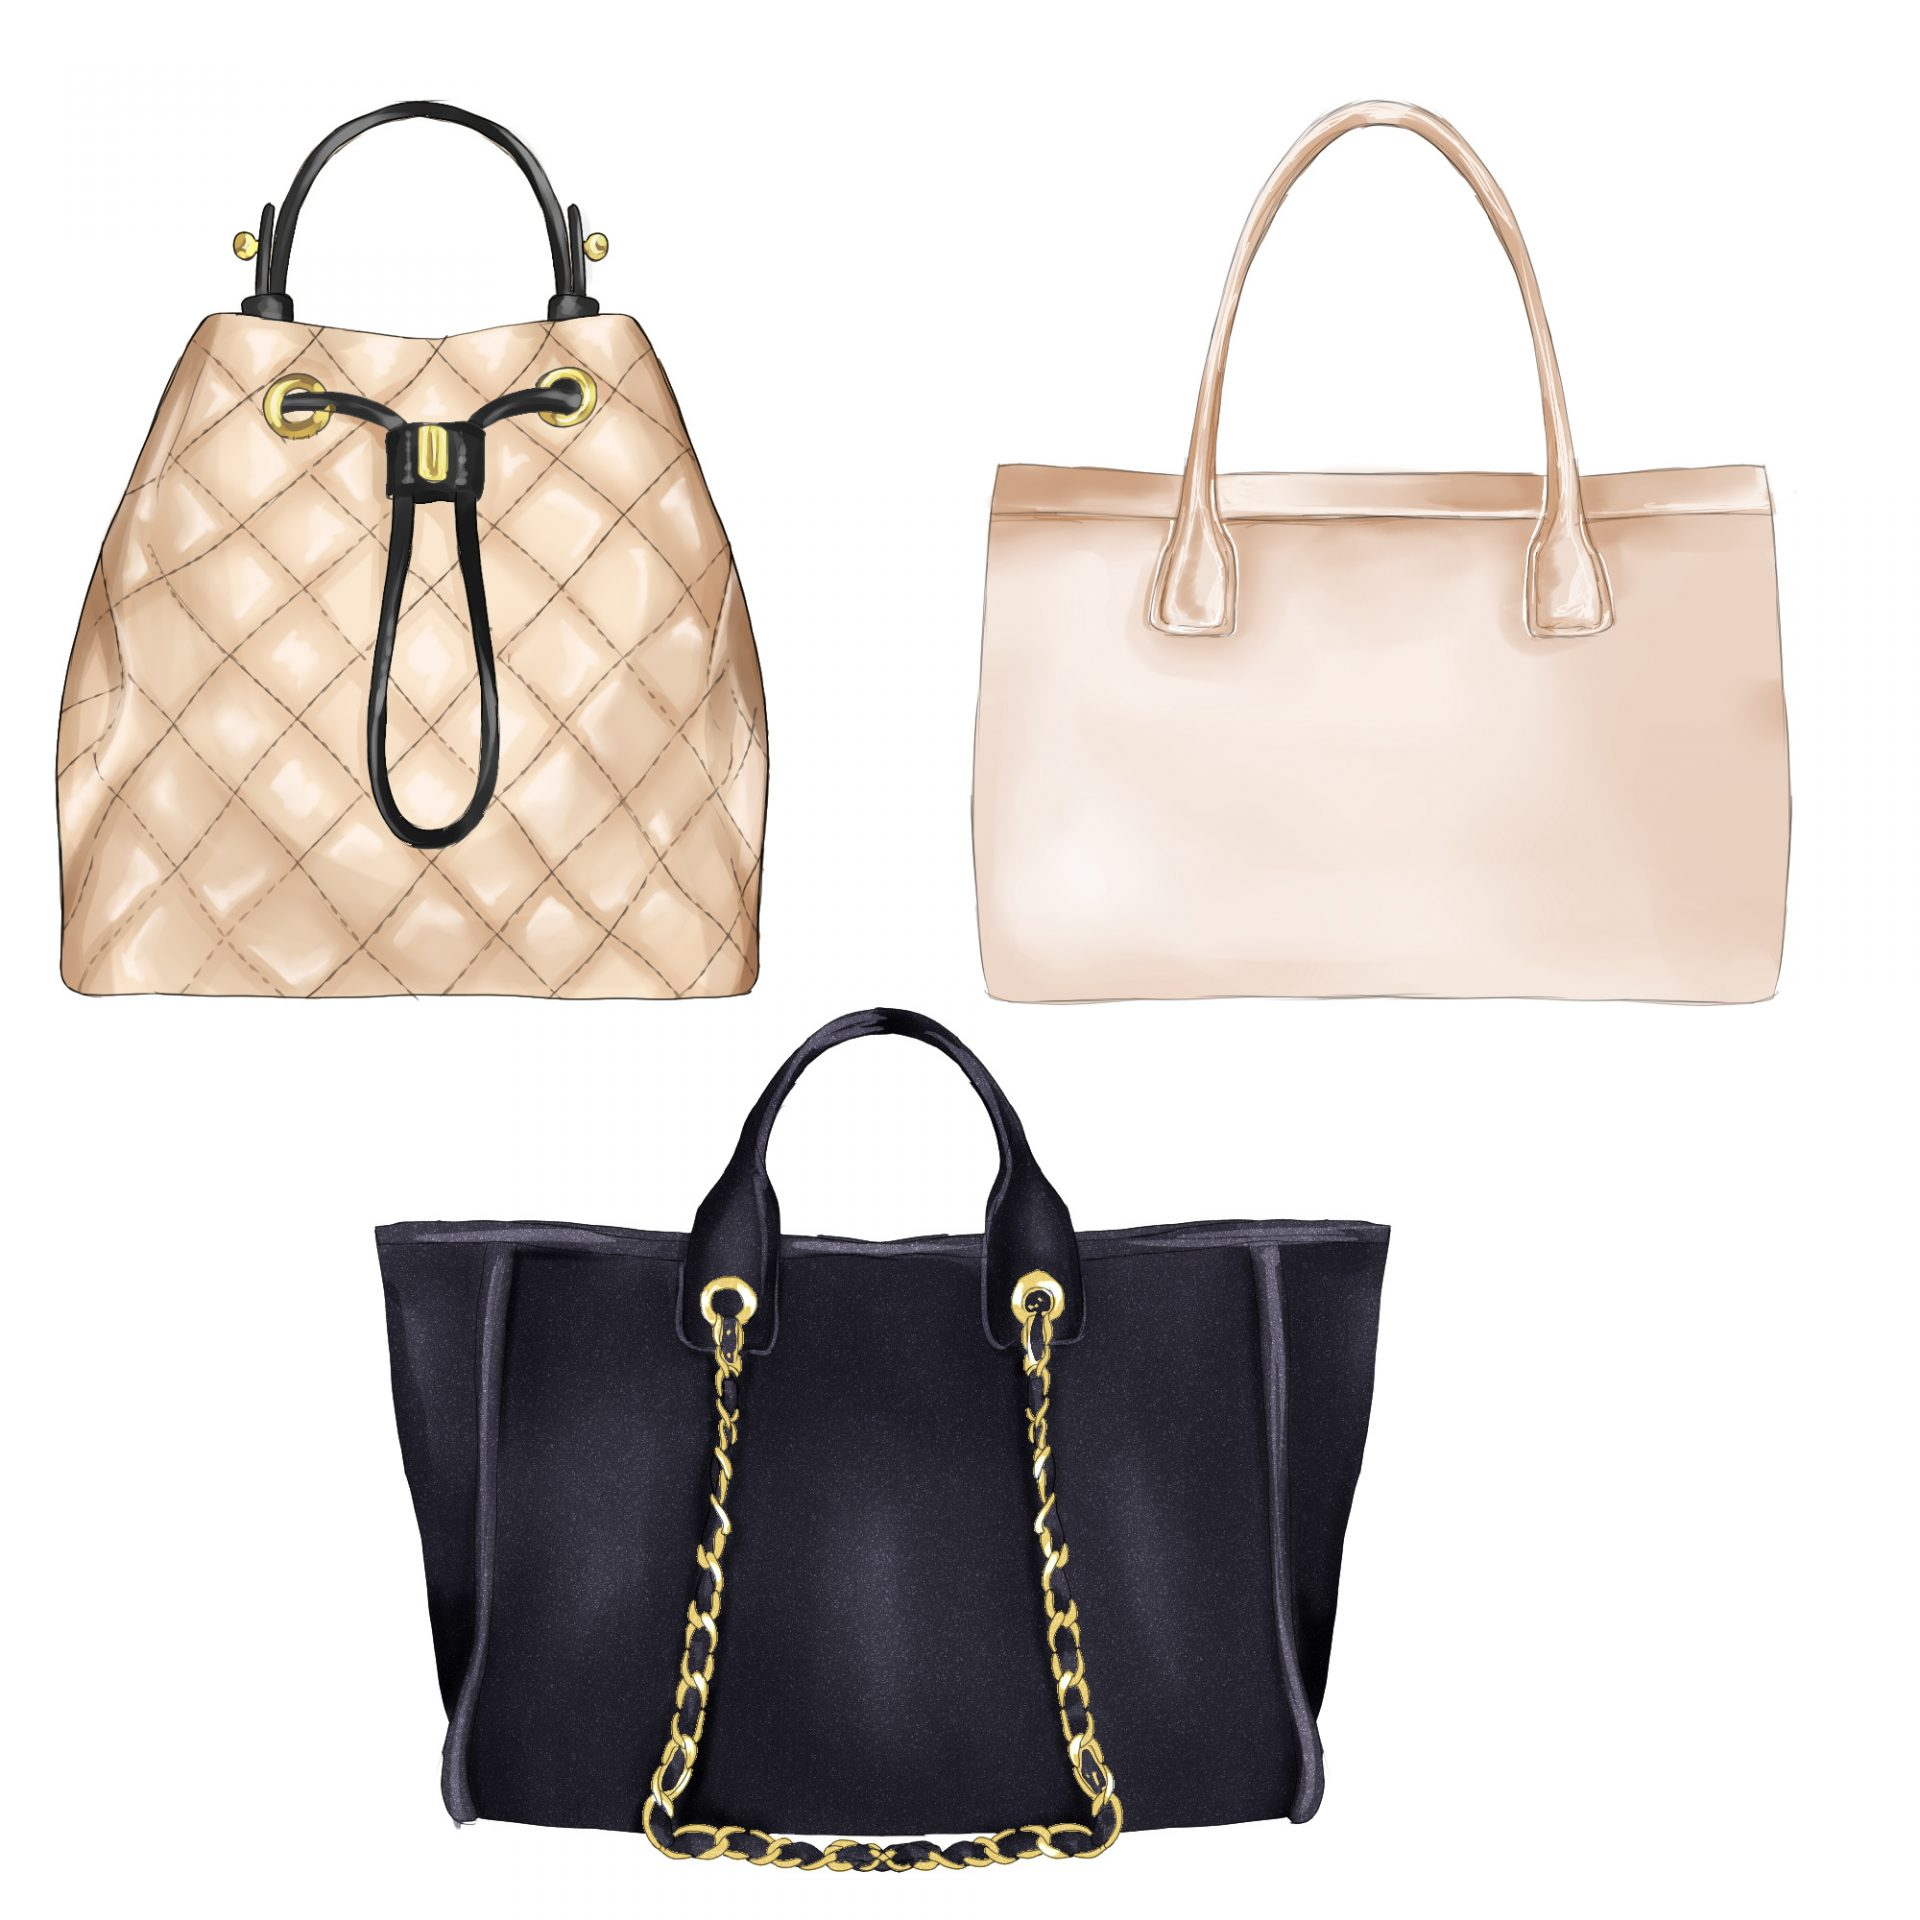 Top 5 designer diaper bags